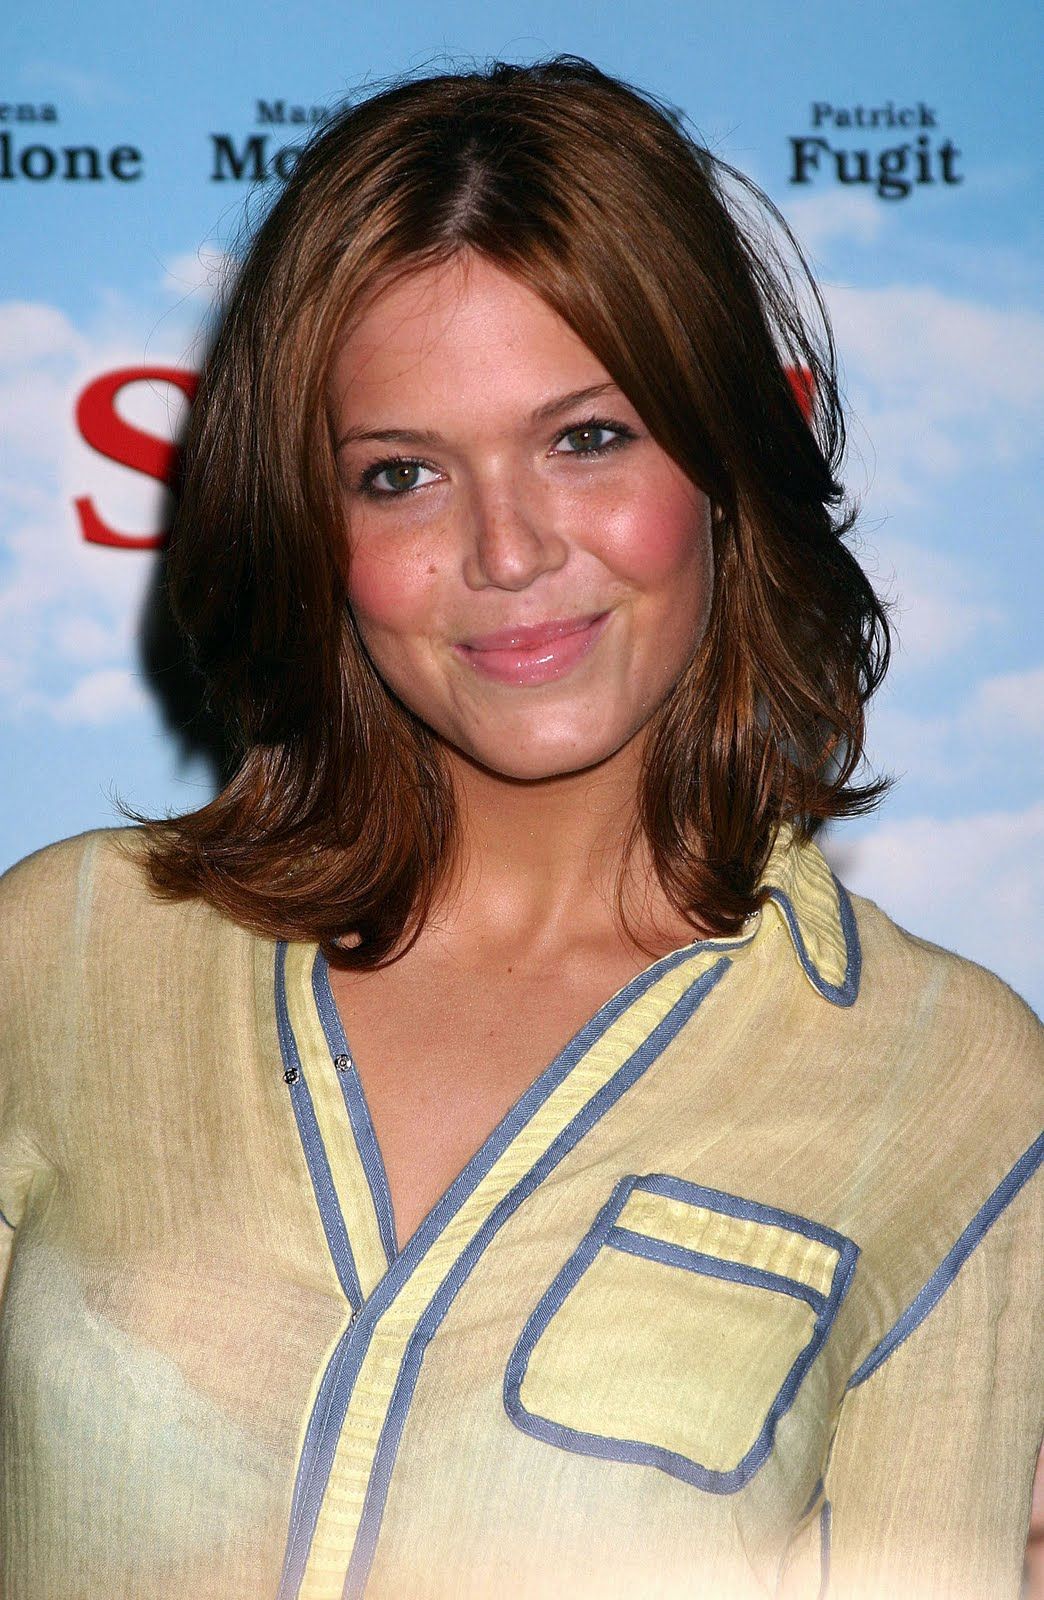 Mandy Moore hot photo